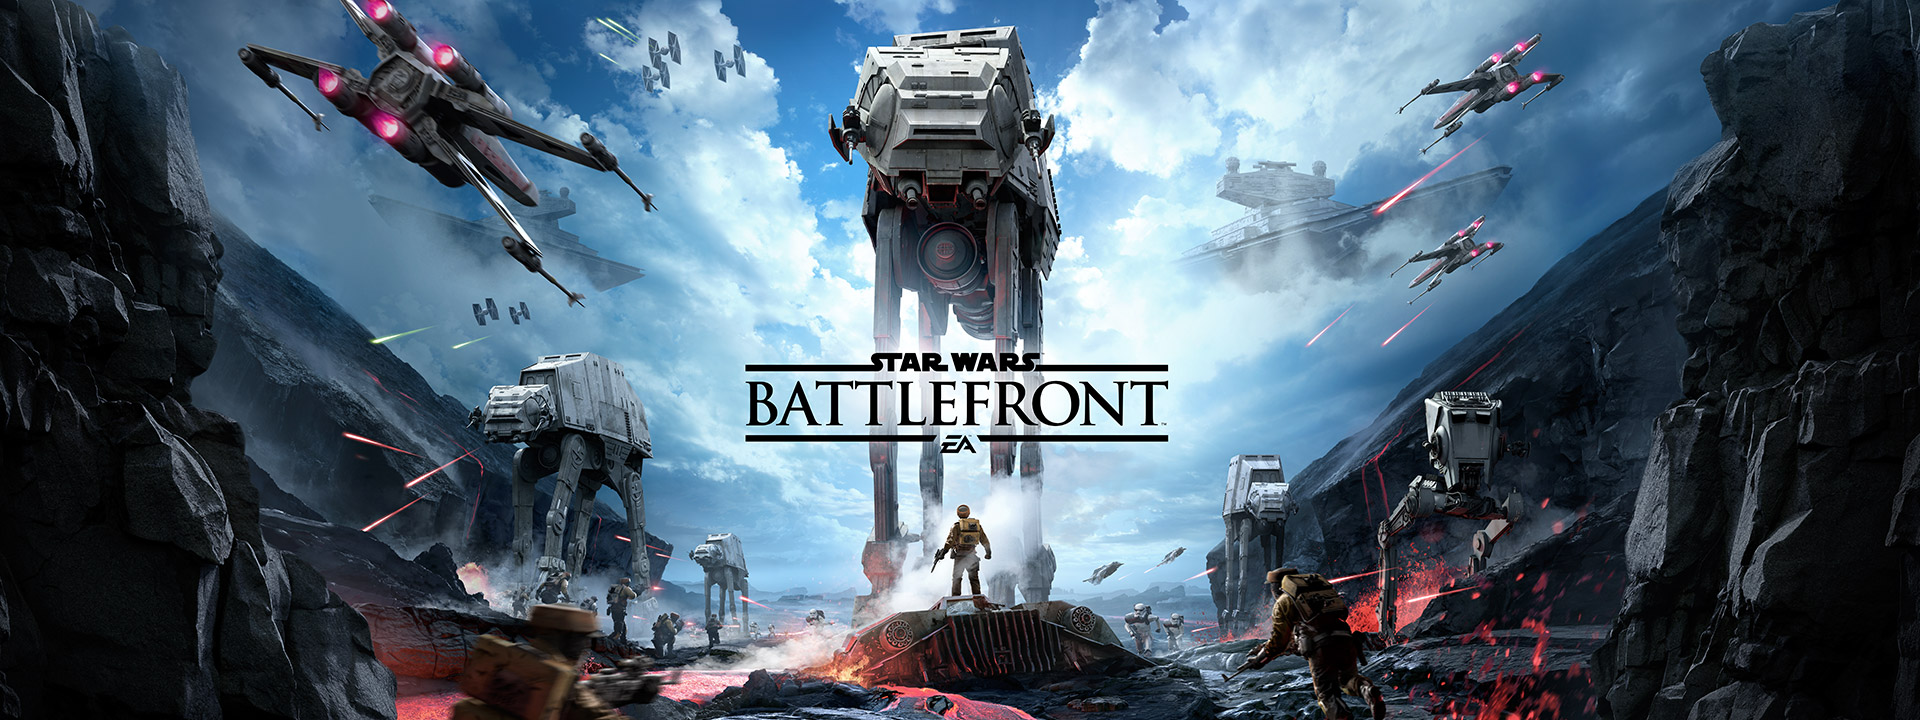 Star Wars Battlefront 1 Free Download Full Version Pc Torrent